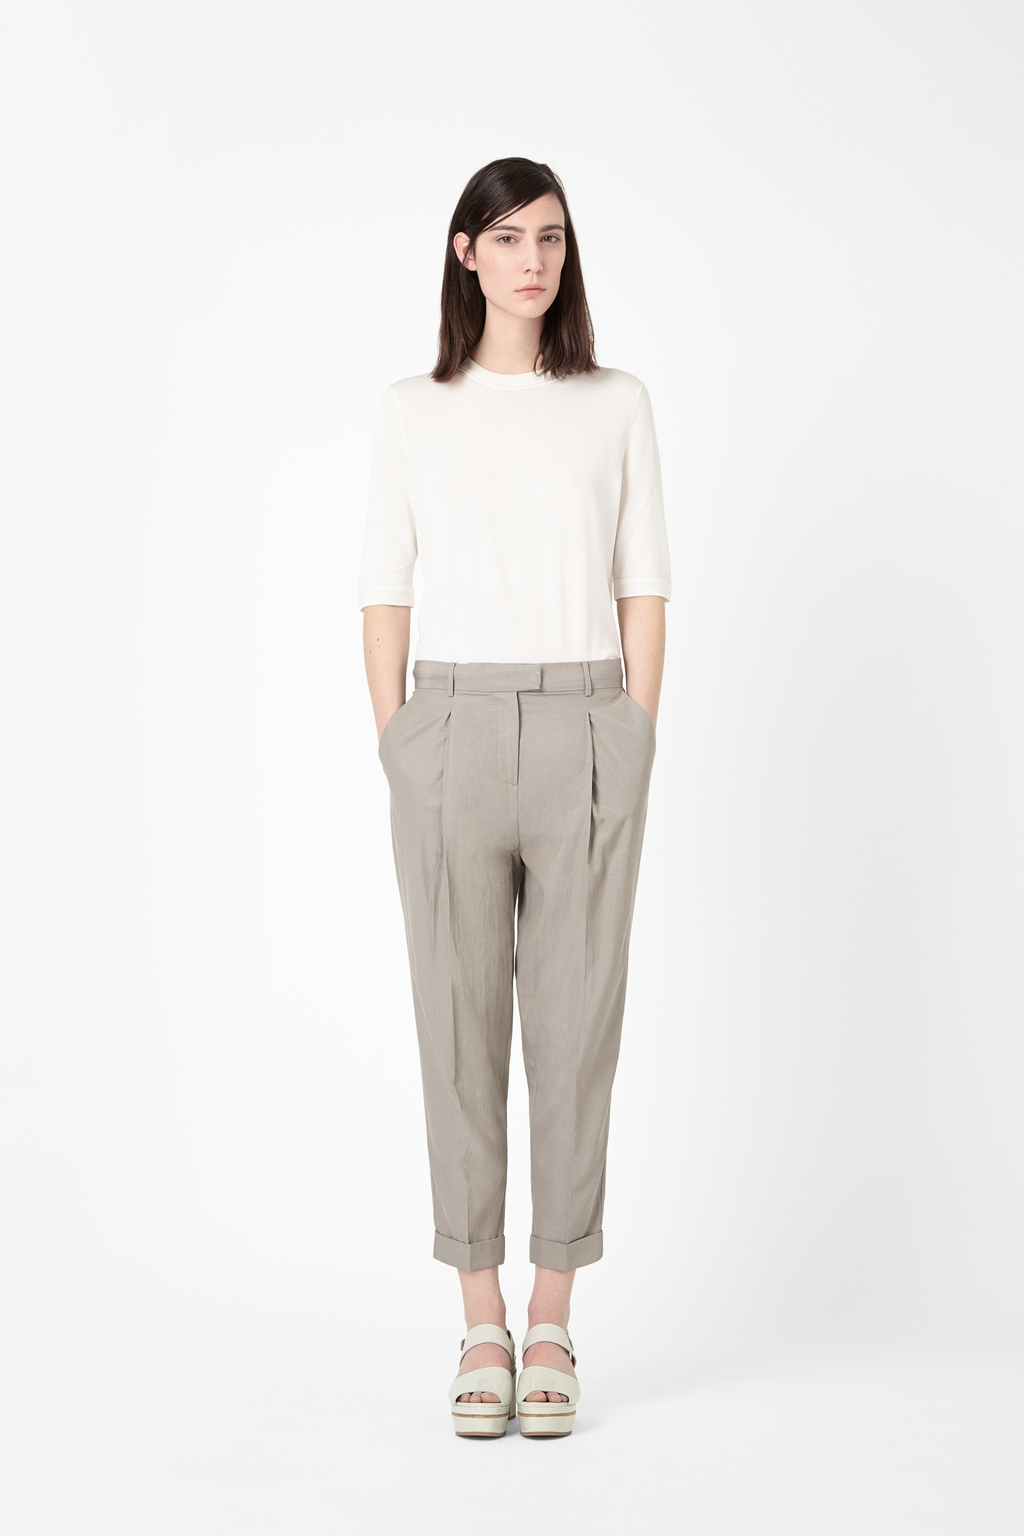 Relaxed Pleated Trousers - pattern: plain; pocket detail: small back pockets, pockets at the sides; style: peg leg; waist: mid/regular rise; predominant colour: khaki; occasions: casual, work, creative work; length: ankle length; fibres: cotton - mix; jeans & bottoms detail: turn ups; fit: tapered; texture group: woven light midweight; season: s/s 2014